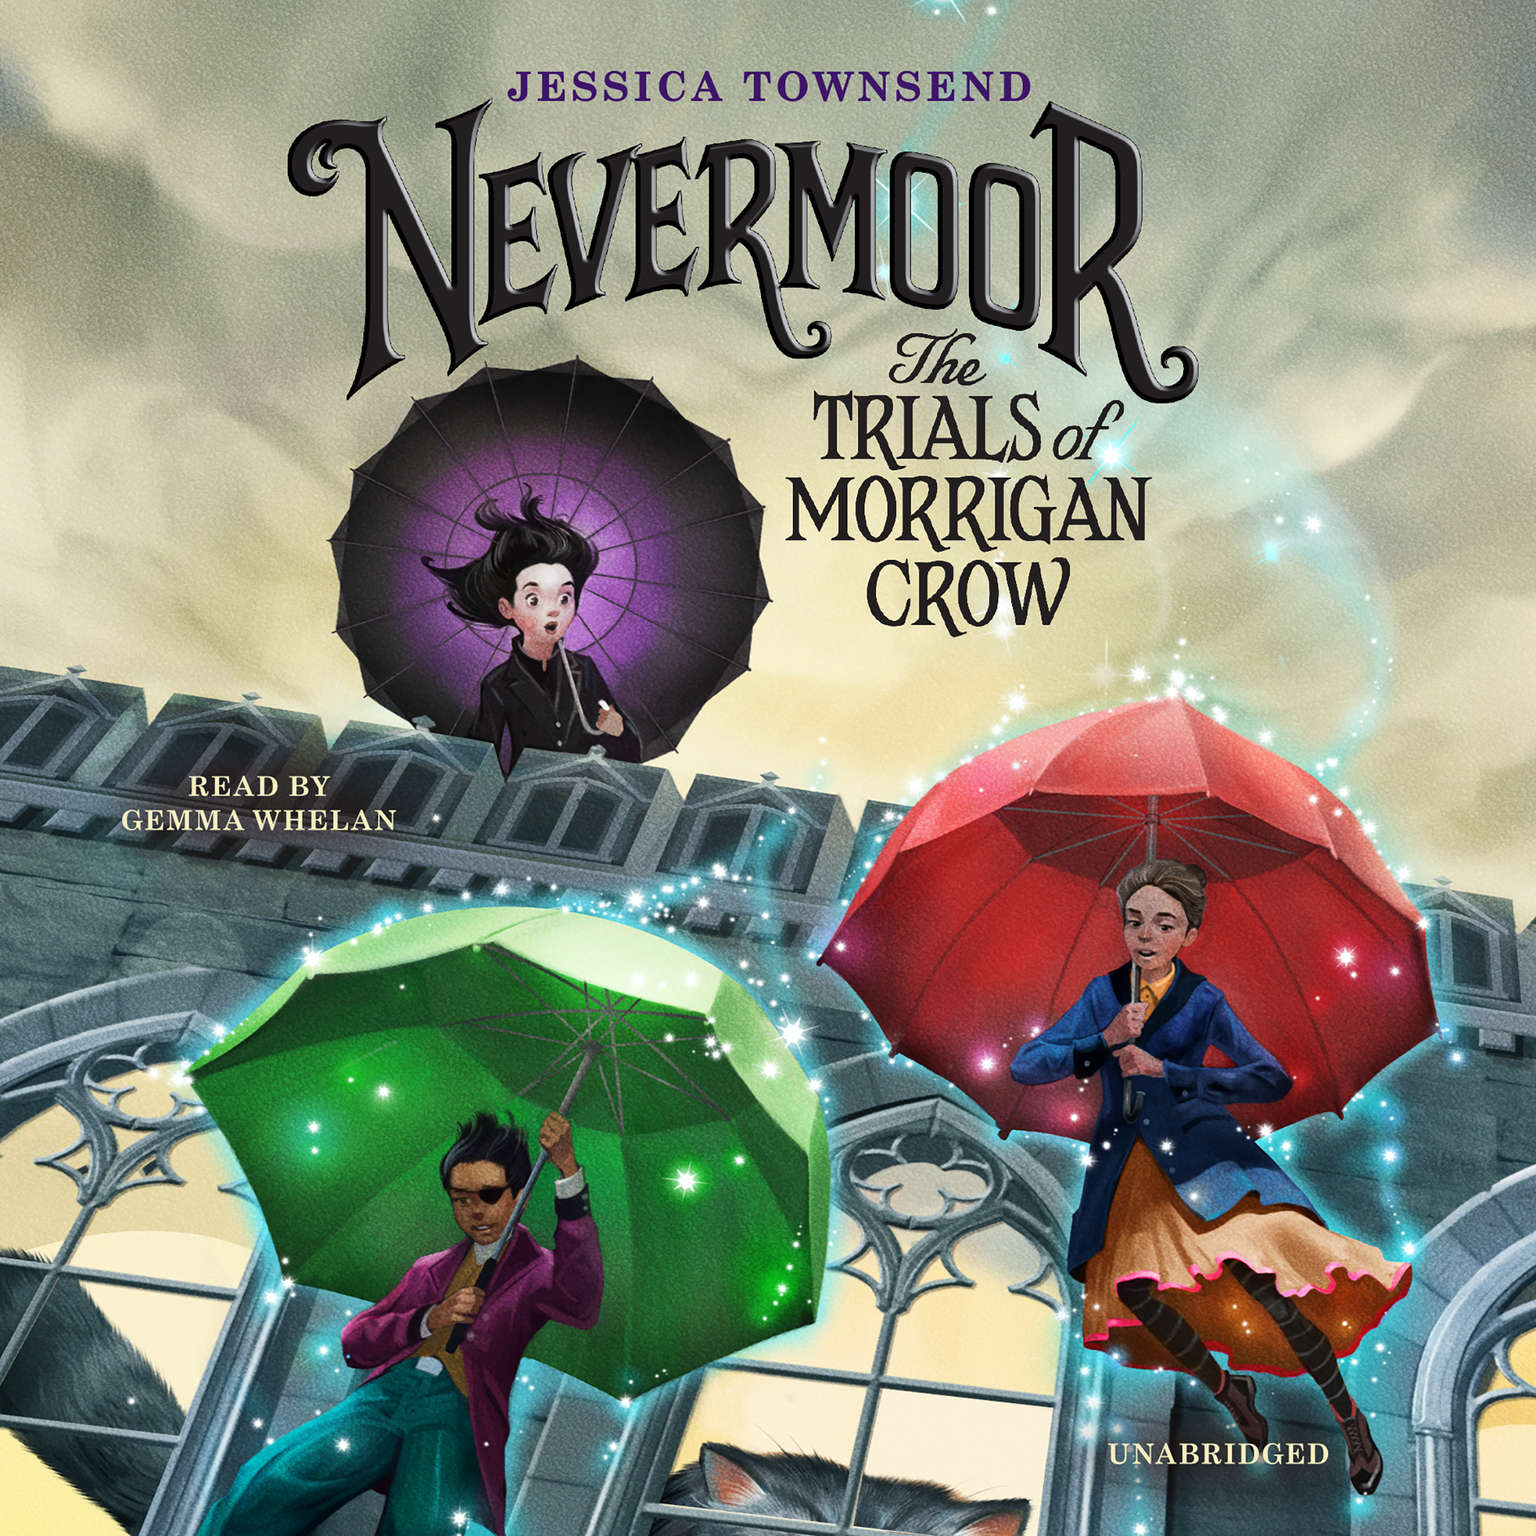 Printable Nevermoor:  The Trials of Morrigan Crow Audiobook Cover Art